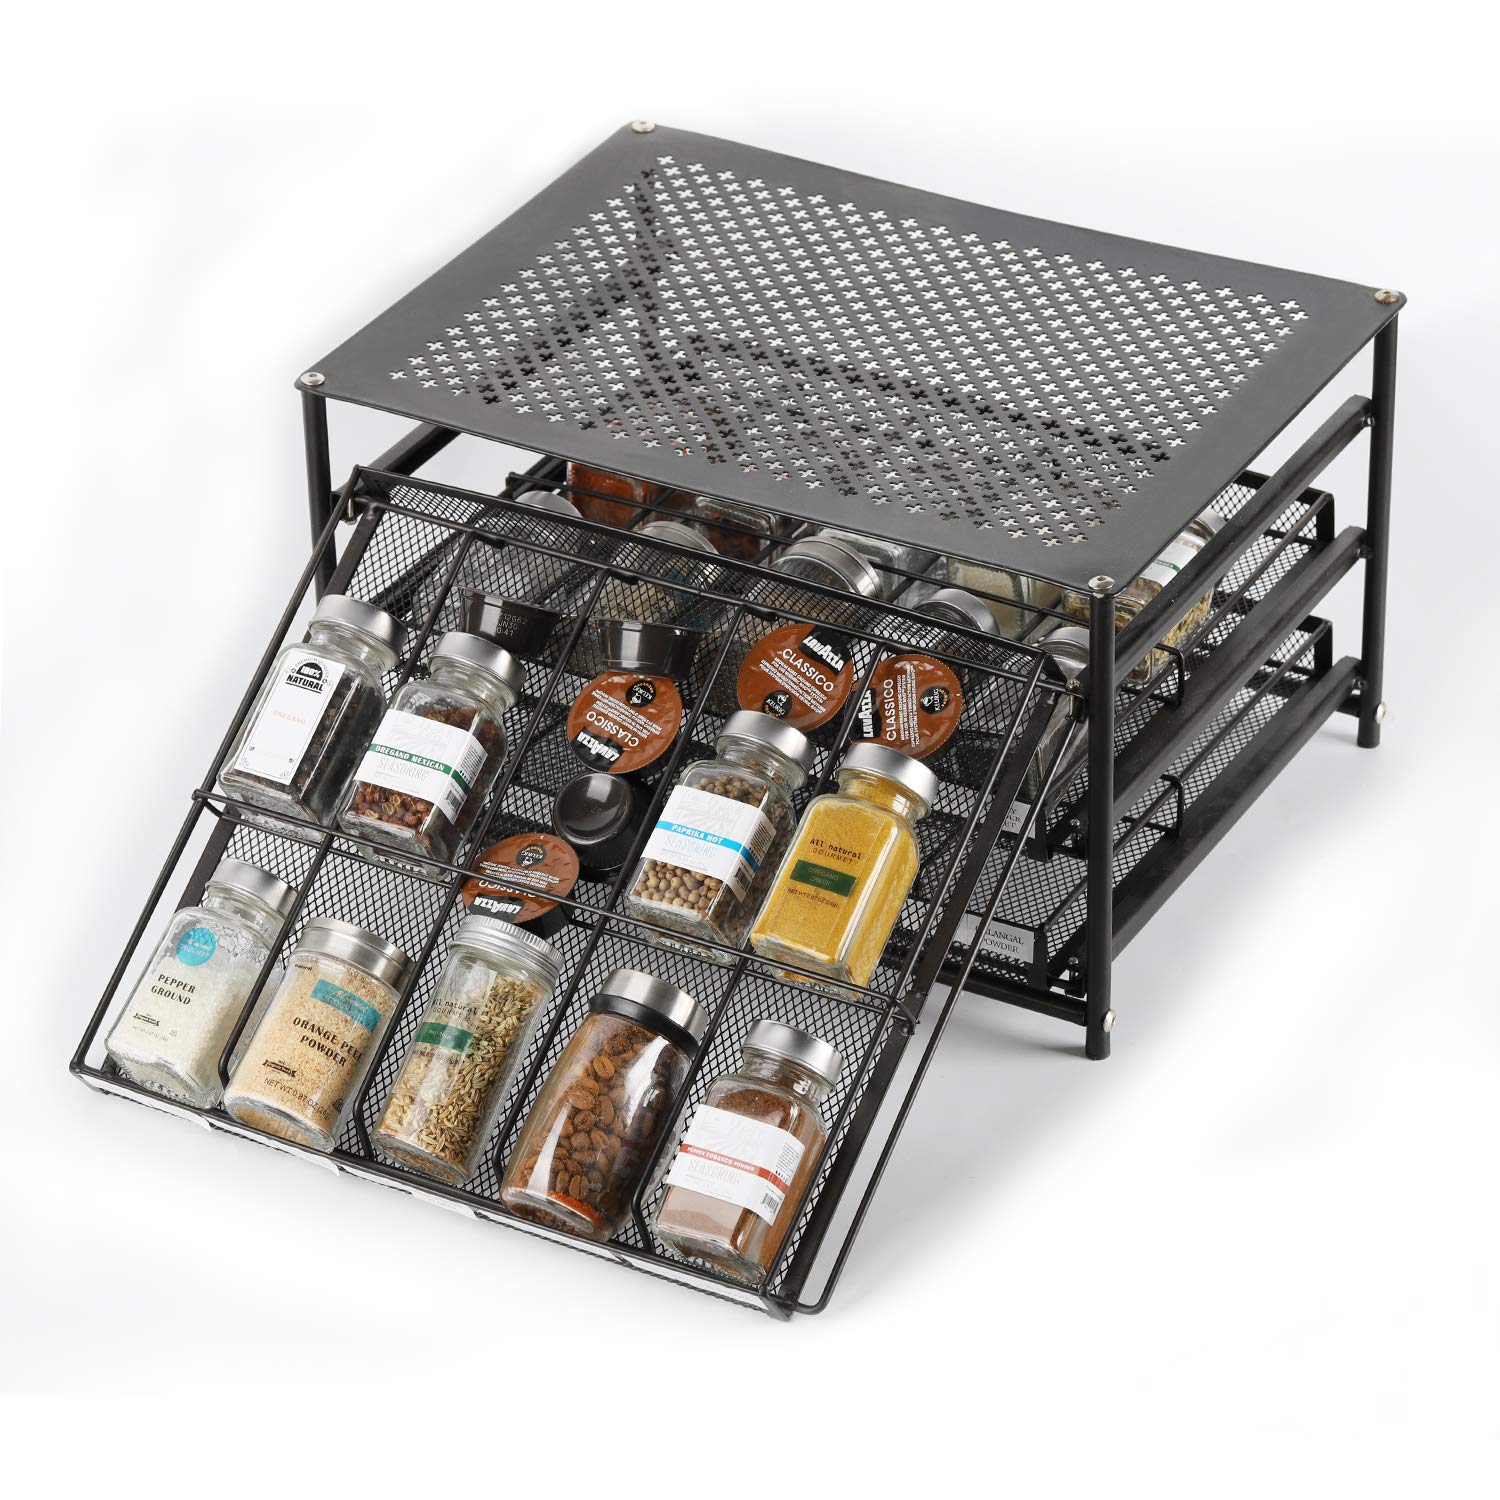 Spice Rack Organizer for Cabinets Storage, Pull Out Spice Drawer Kitchen Organization Containers for 30-60 Glass Bottle, Slide Out Cabinet for Pantry, Makeup, Nail Polish, Medicine, Dark Brown by CASAVIDA